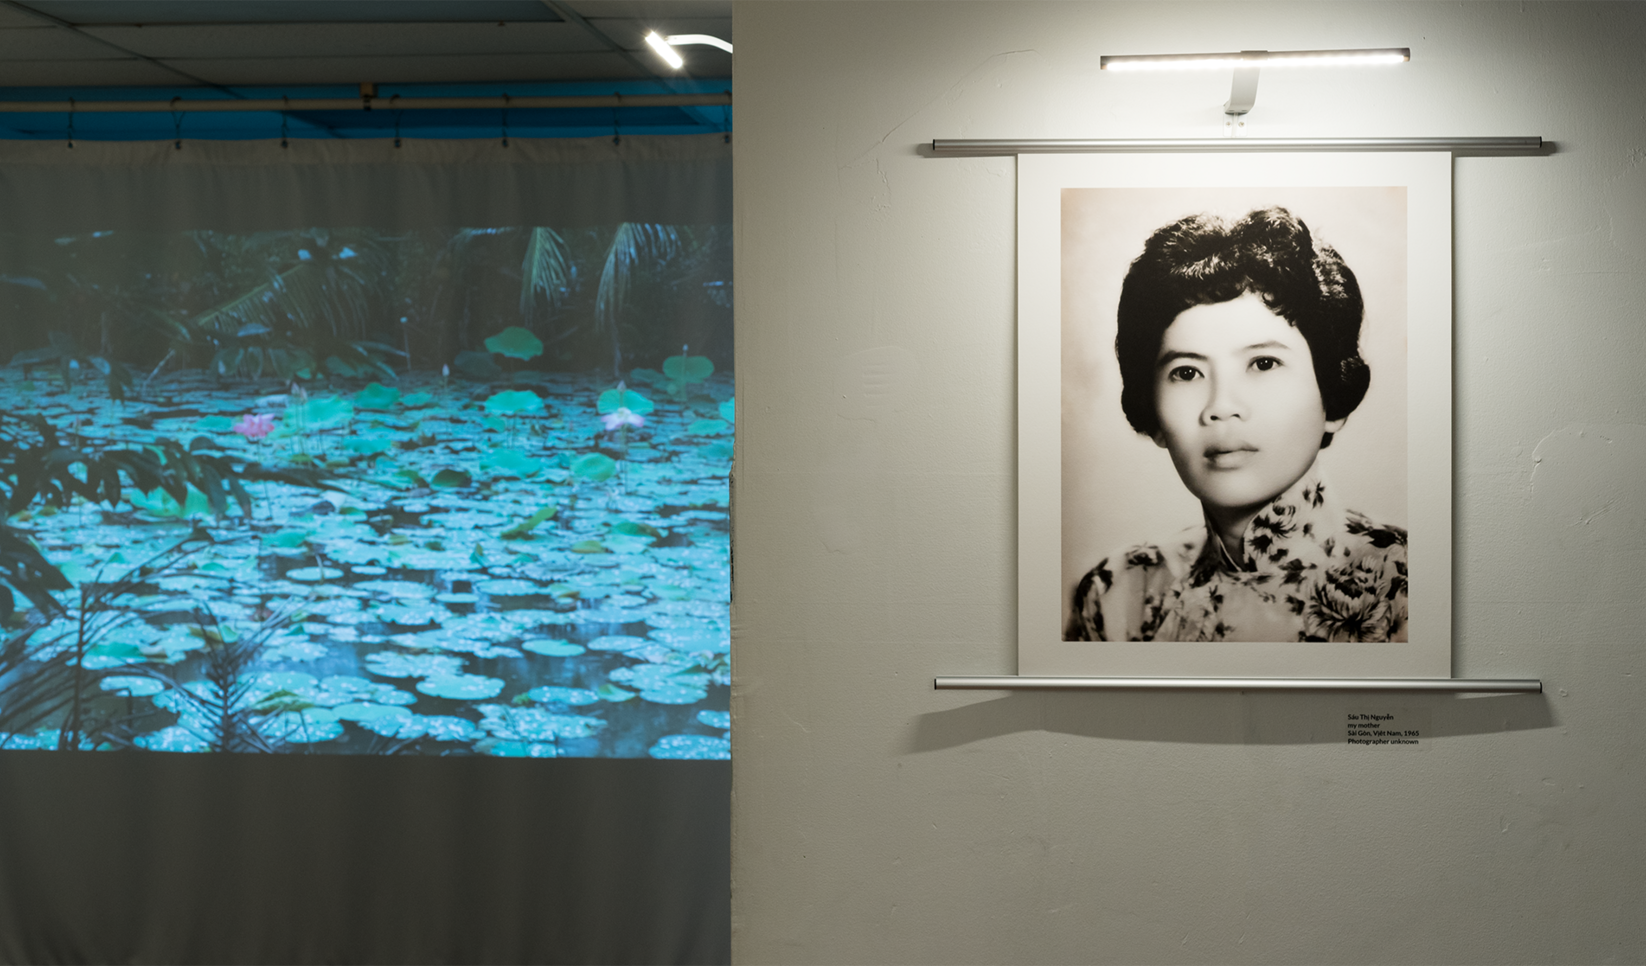 Đi thì không có đường về – Leave, then there is no way home. Sáu Thị Nguyễn, 1965. Footage of rain falling on lotus in a bomb crater pond, in her home village, 2018. (Installation View Photo by Constance Mensh for Asian Arts Initiative) ; Boone Nguyen